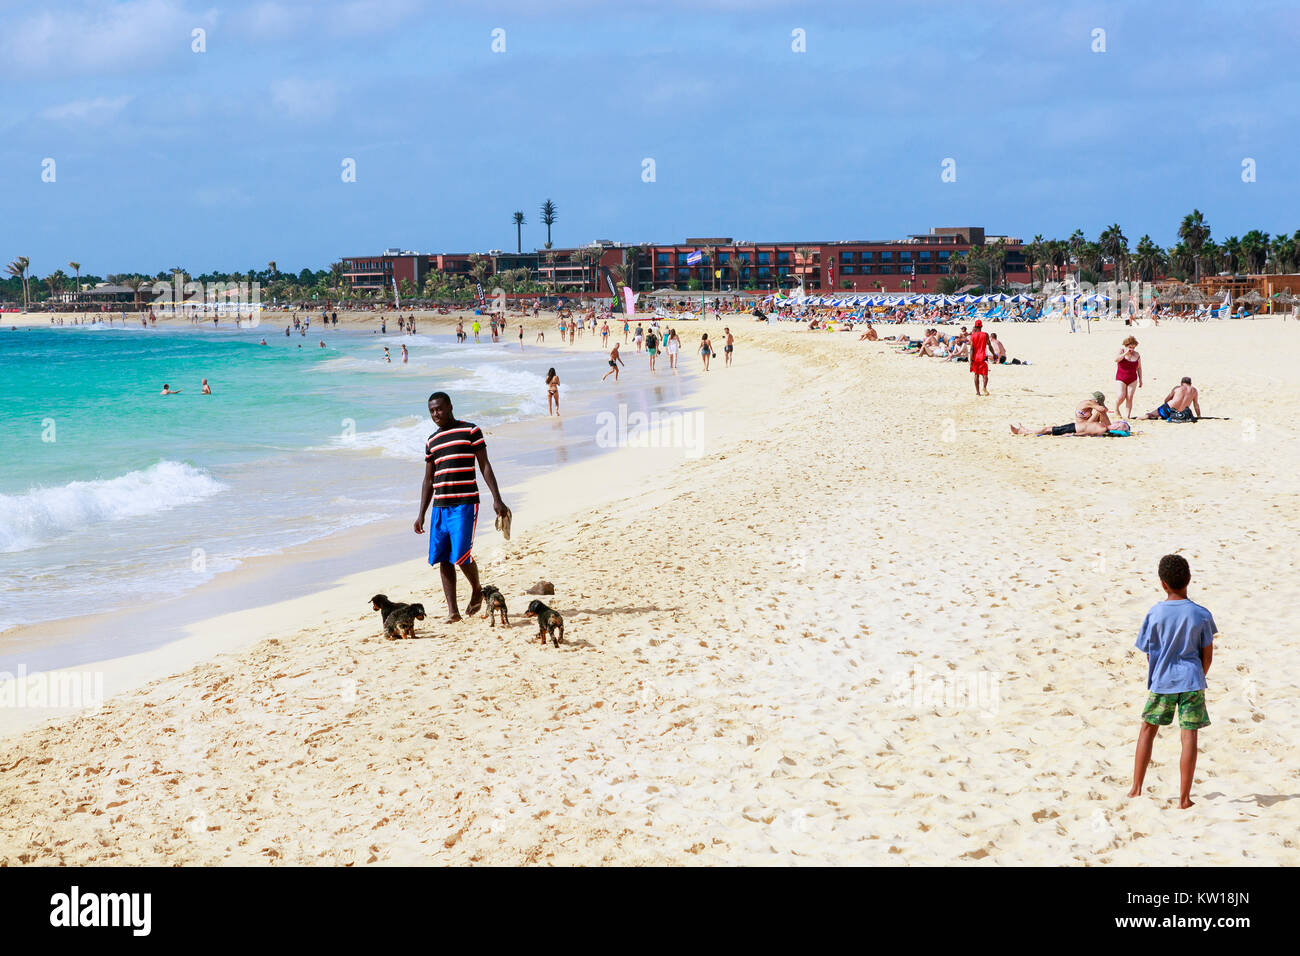 View of the public beach at Santa Maria, Sal island, Salina, Cape Verde, Africa - Stock Image